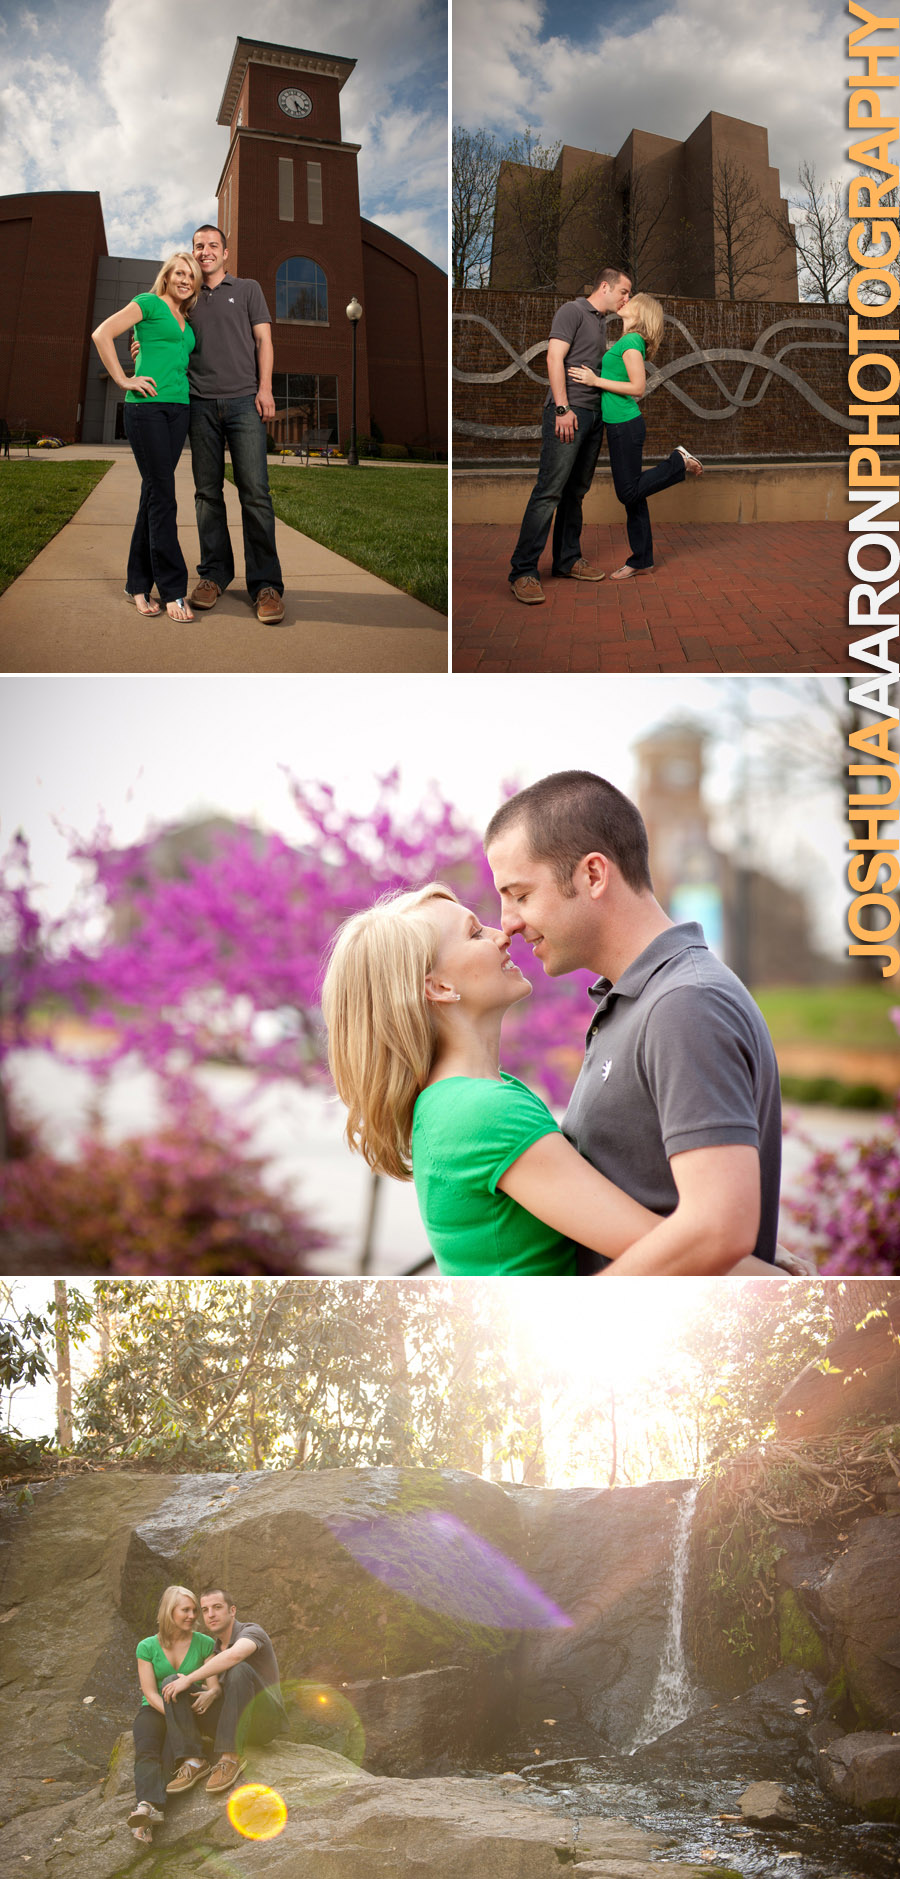 Sydney Phillips Engagements Greenville, SC